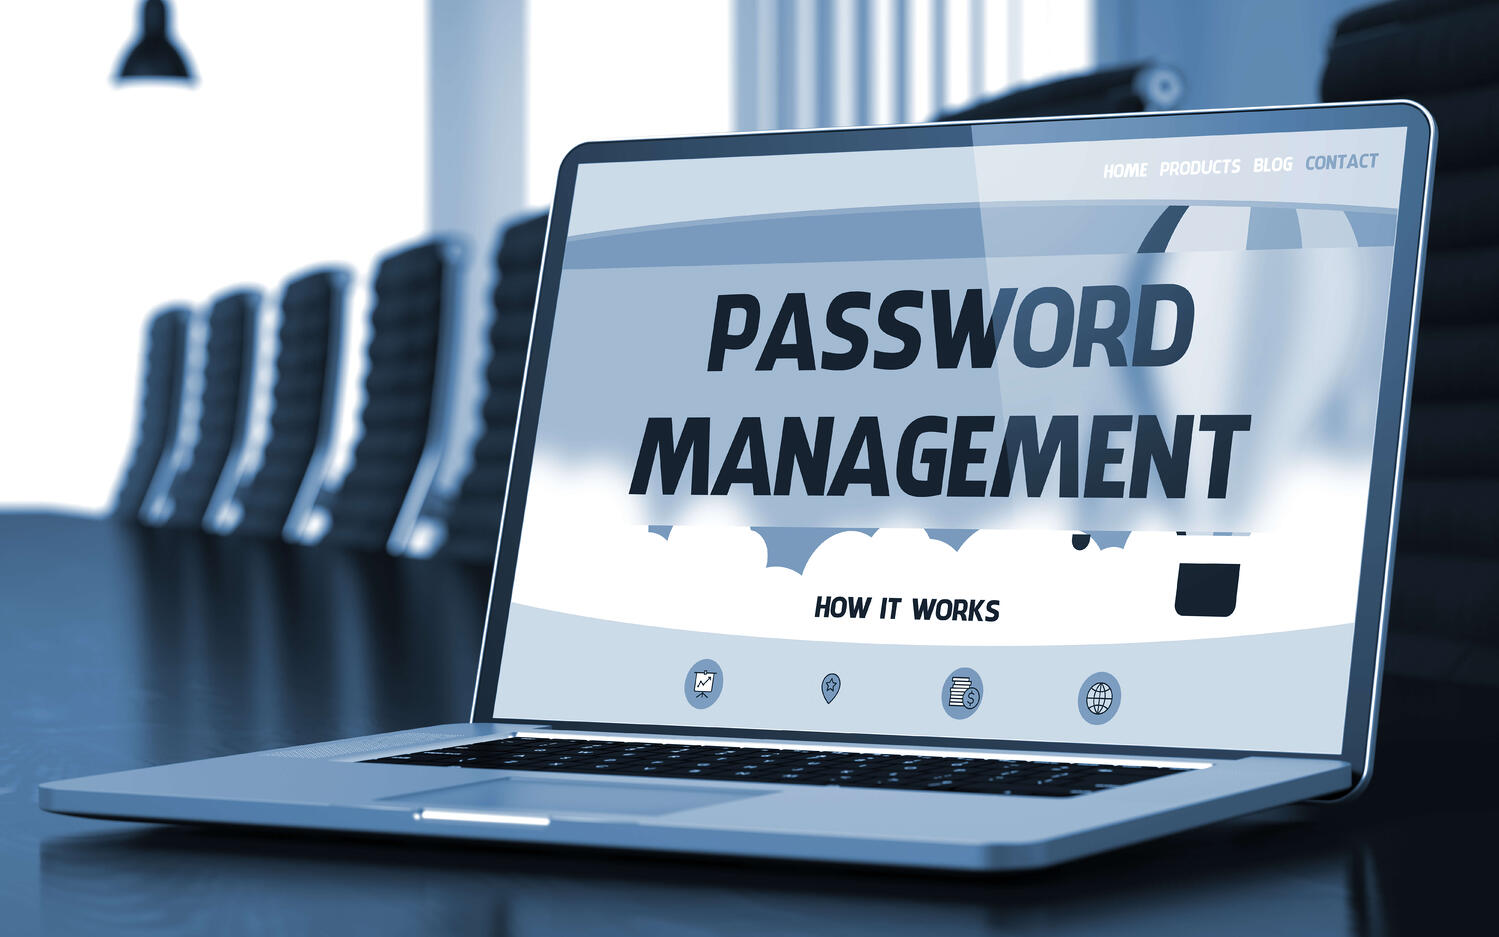 password manager on laptop in conf room black and white